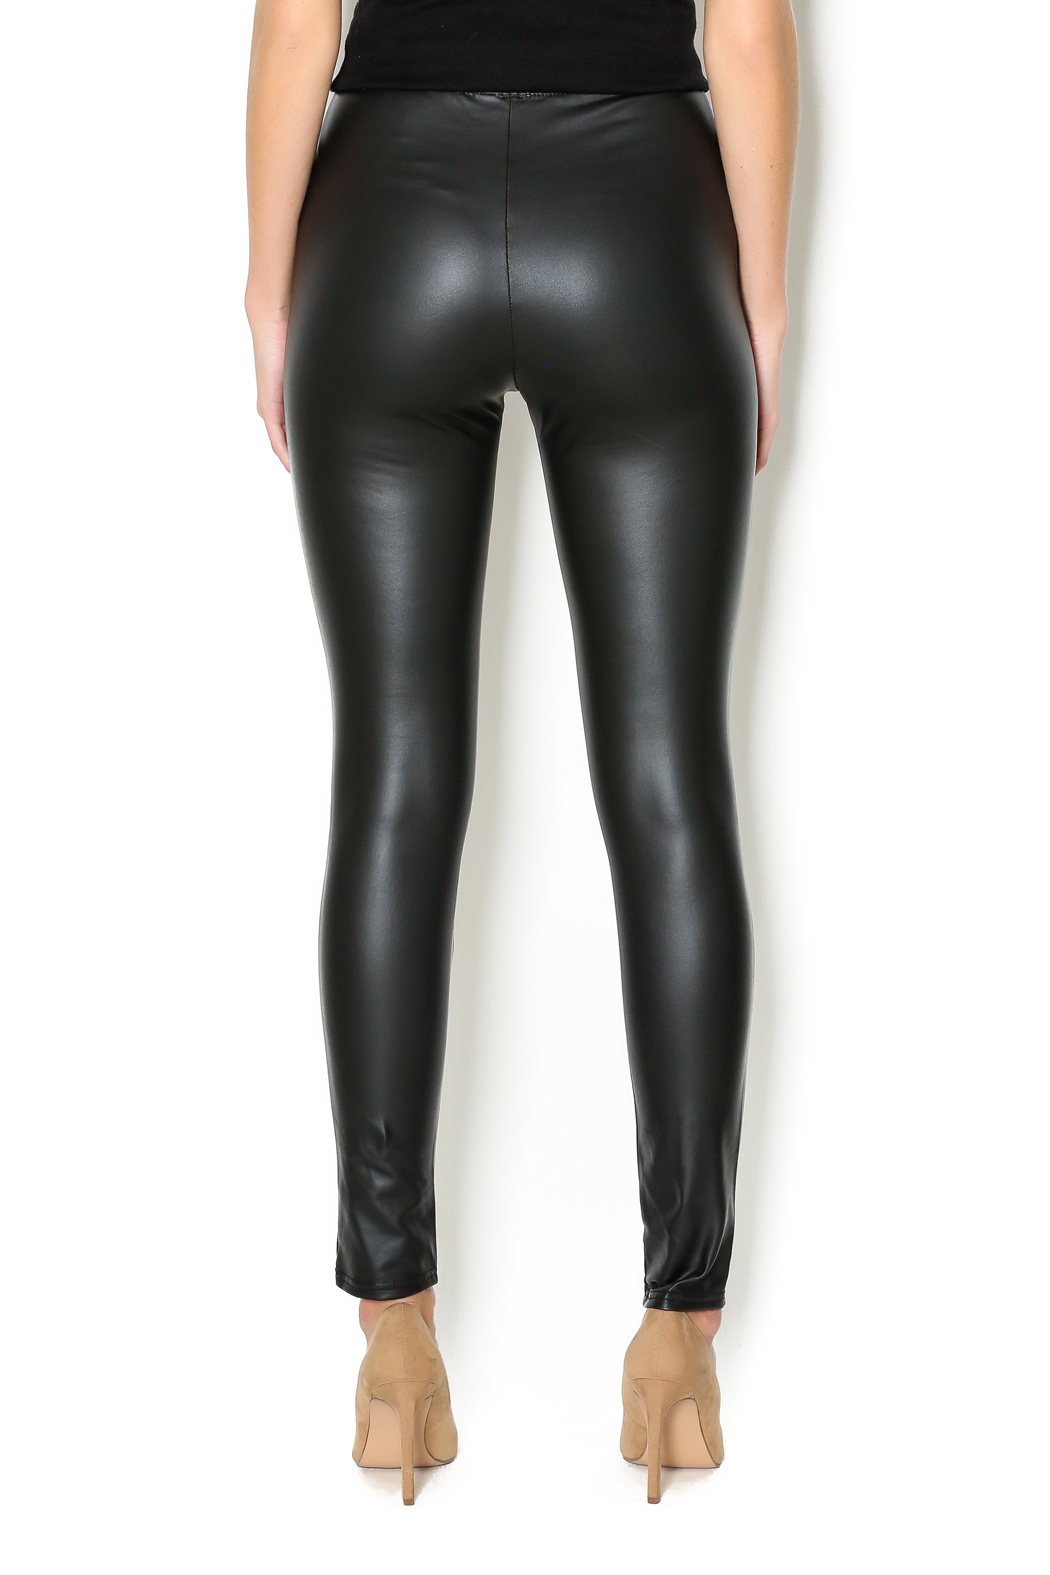 429411ad49d20 RD Style Faux Leather Legging from Minnesota by Apricot Lane - St ...